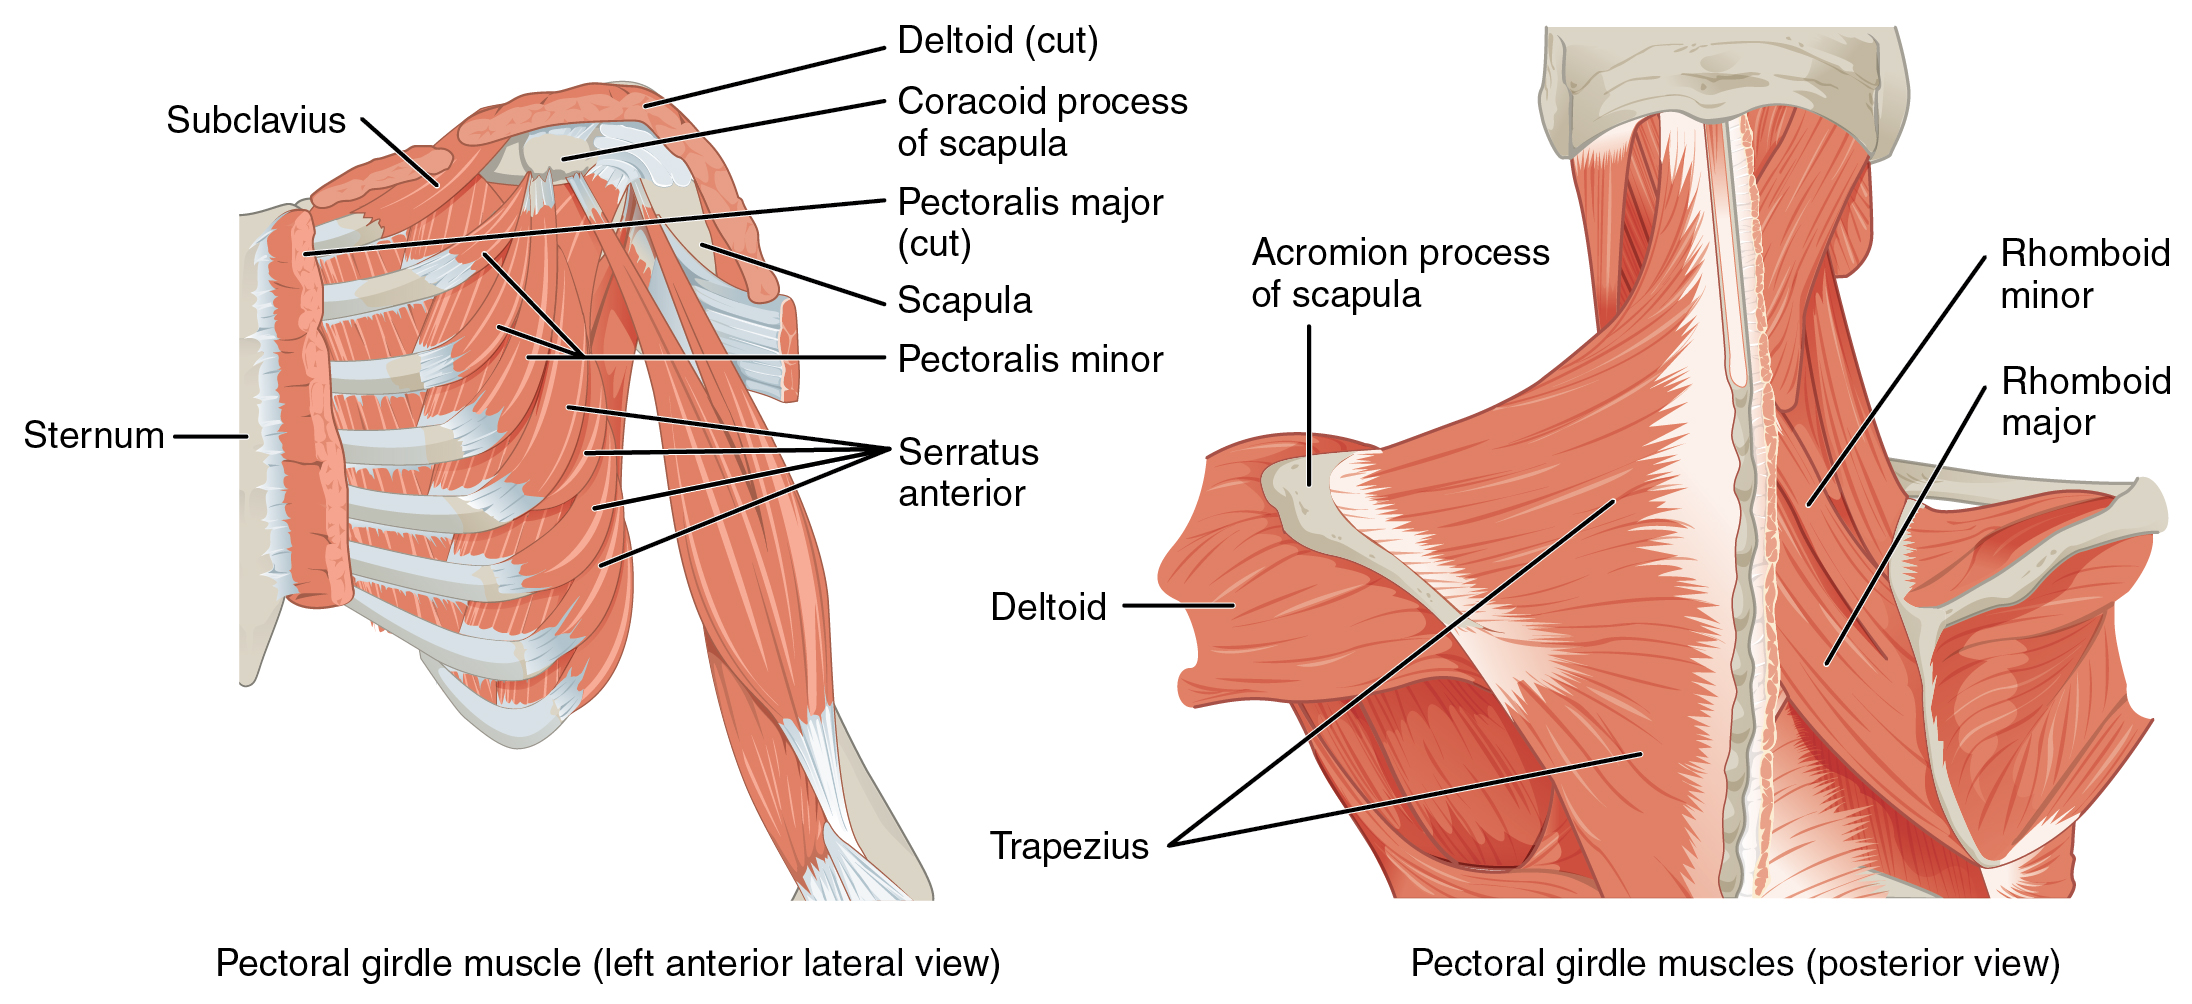 The left panel shows the anterior lateral view of the pectoral girdle muscle, and the right panel shows the posterior view of the pectoral girdle muscle.